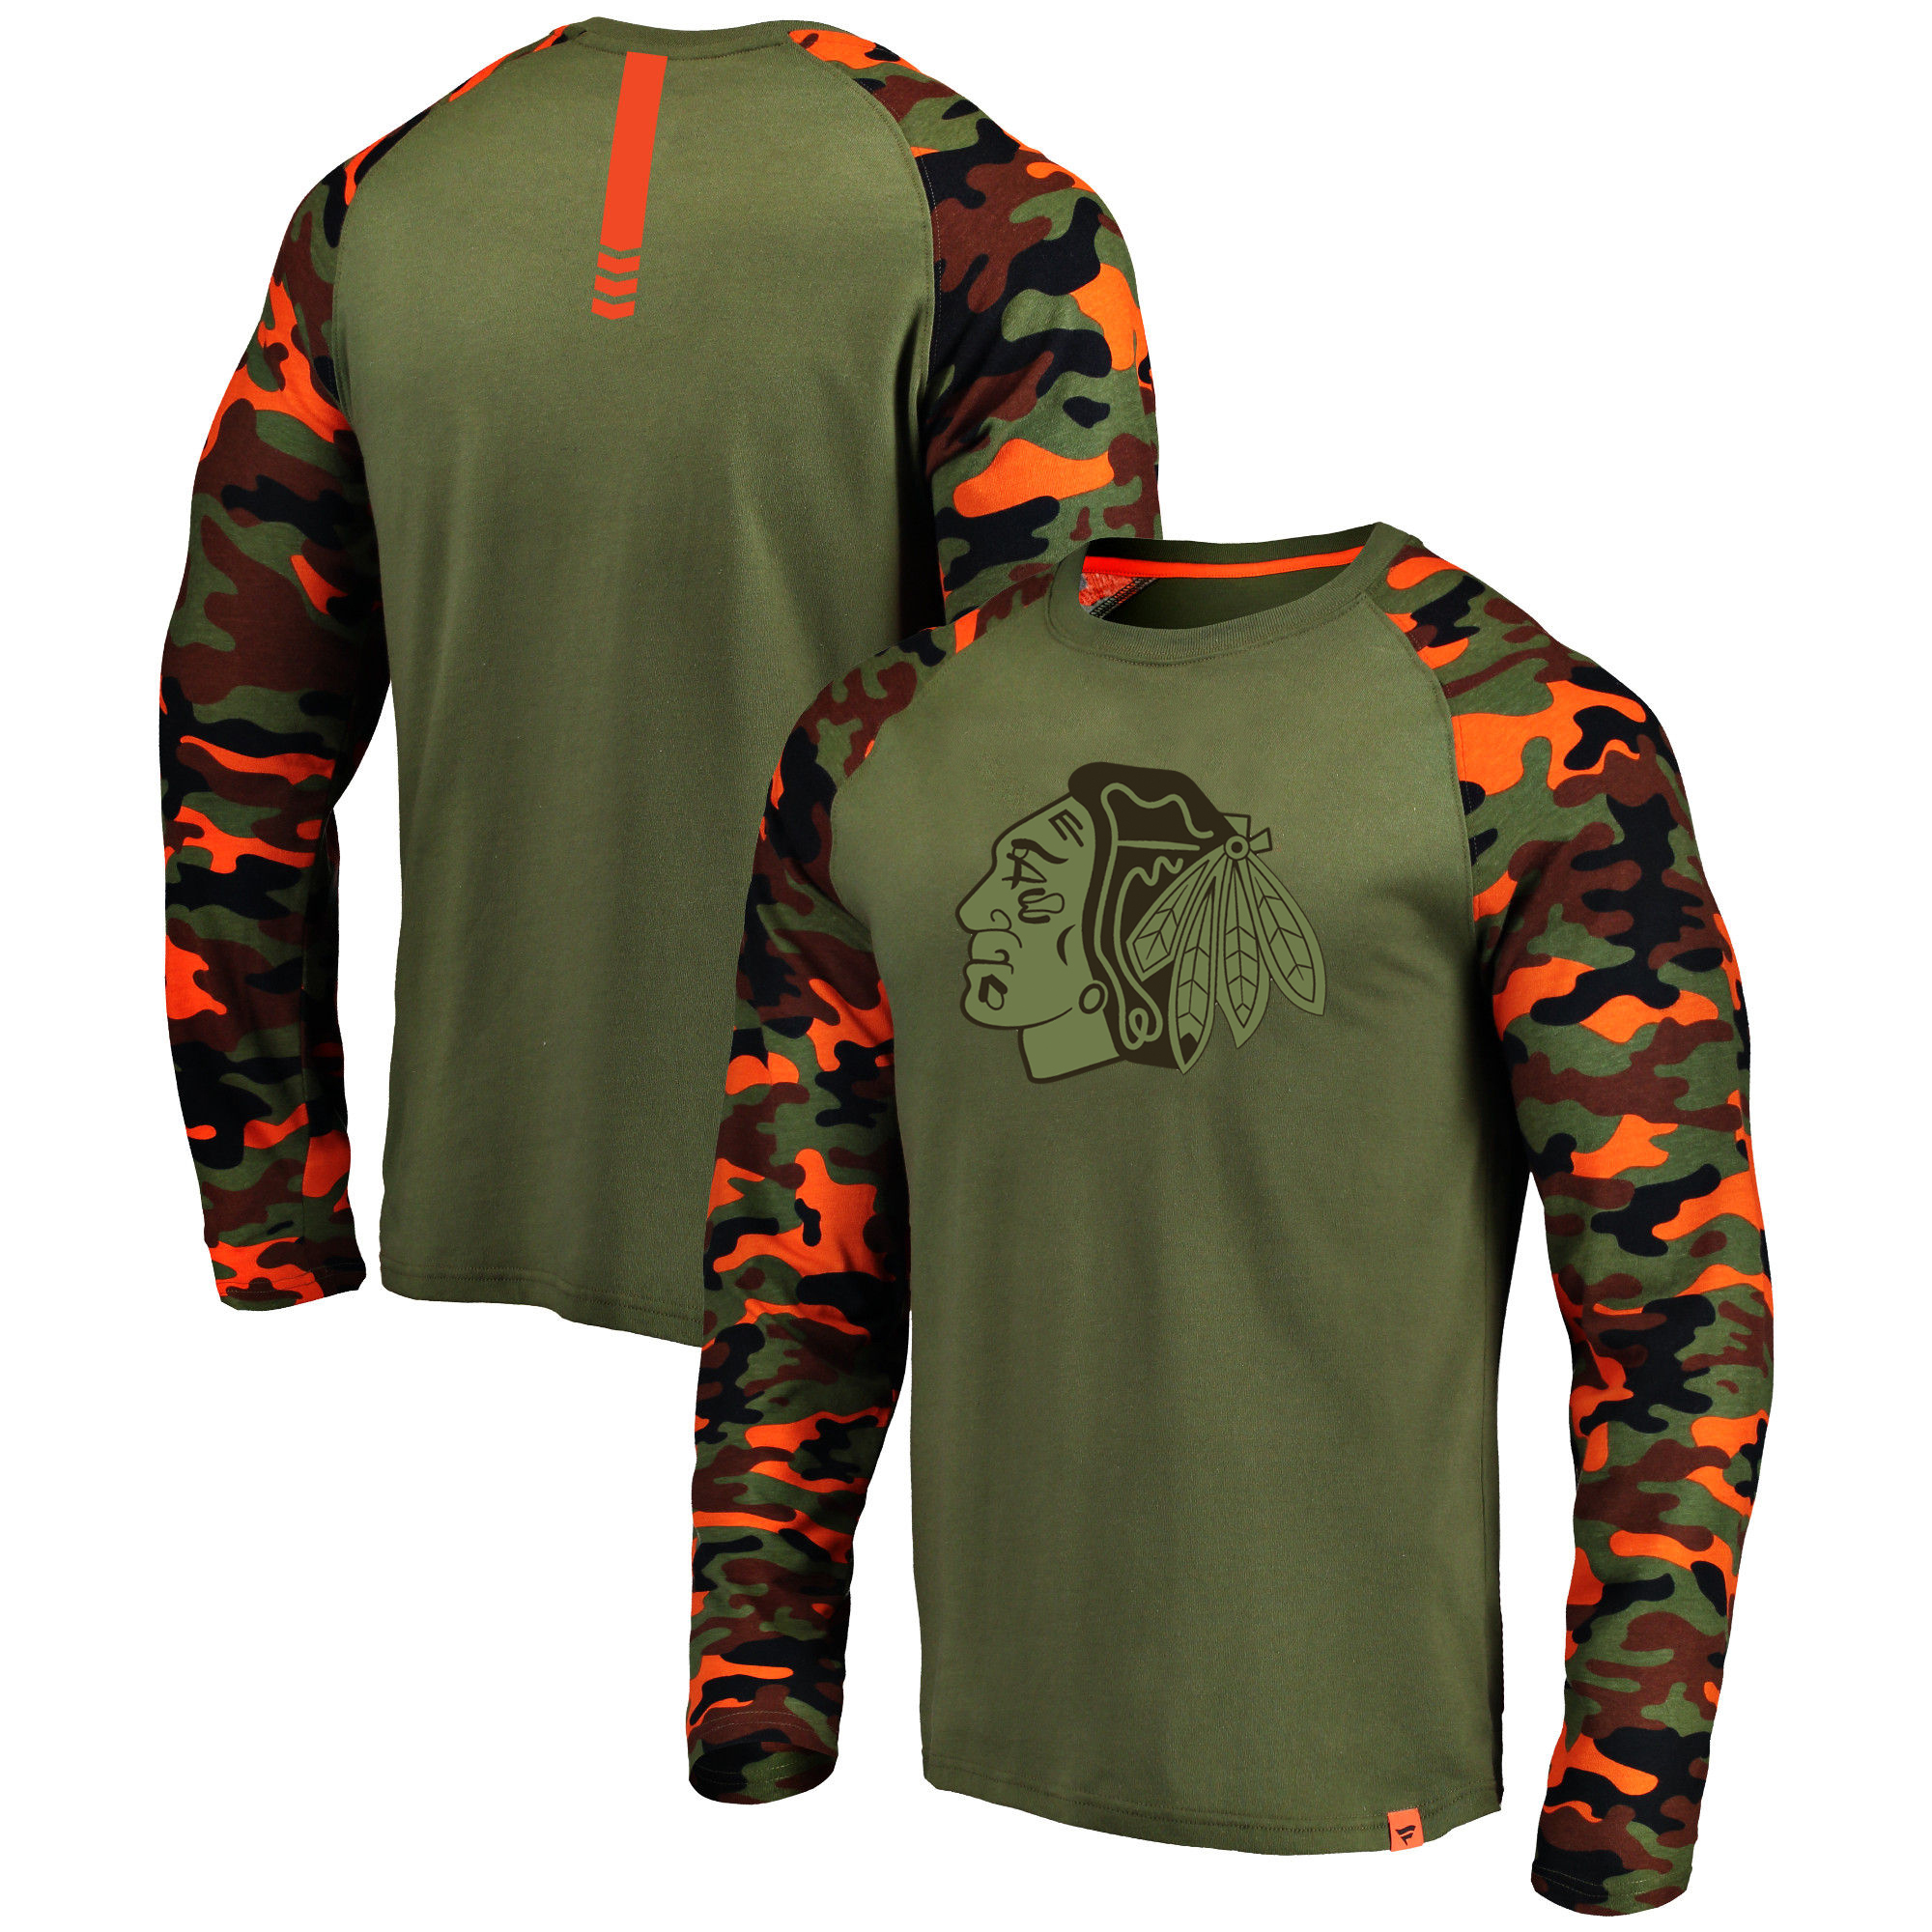 Chicago Blackhawks Fanatics Branded Olive/Camo Recon Long Sleeve Raglan T-Shirt